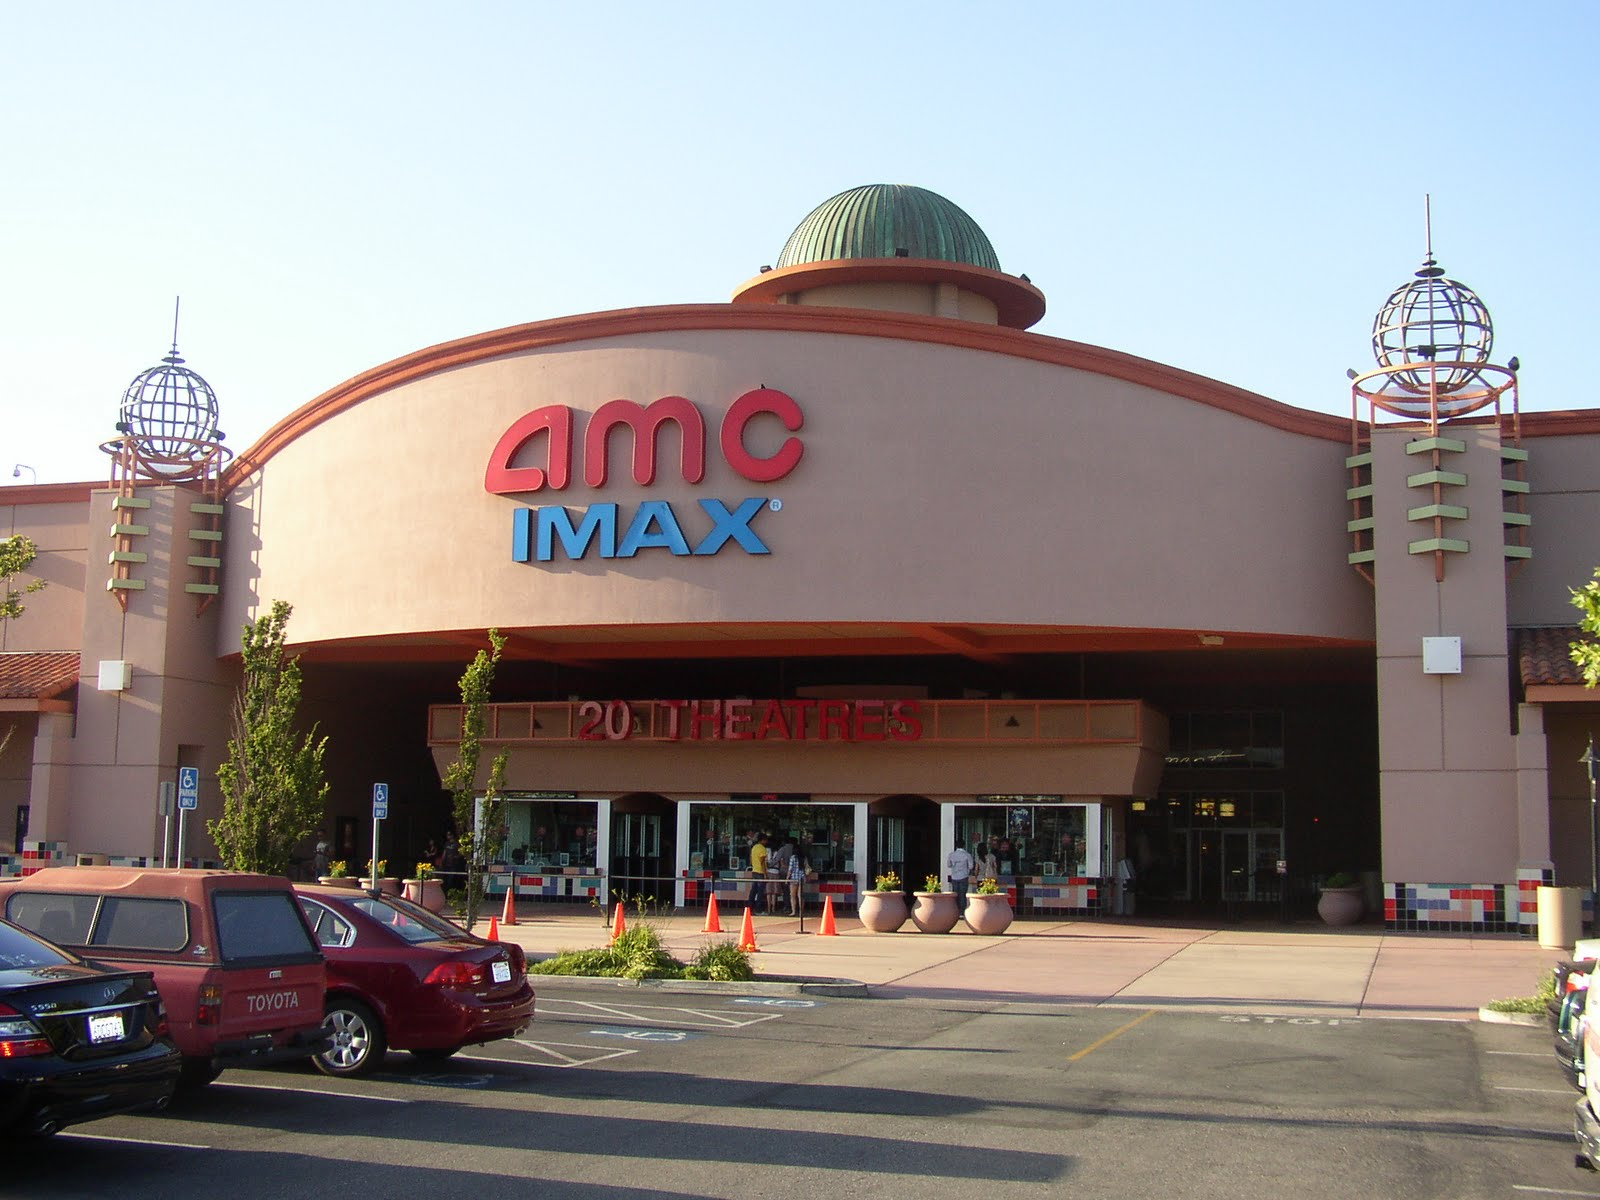 · Digital Media MoviePass drops 10 top AMC theaters. Will you still want it? If you pay $10 a month for unlimited movies, you can't go here anymore.